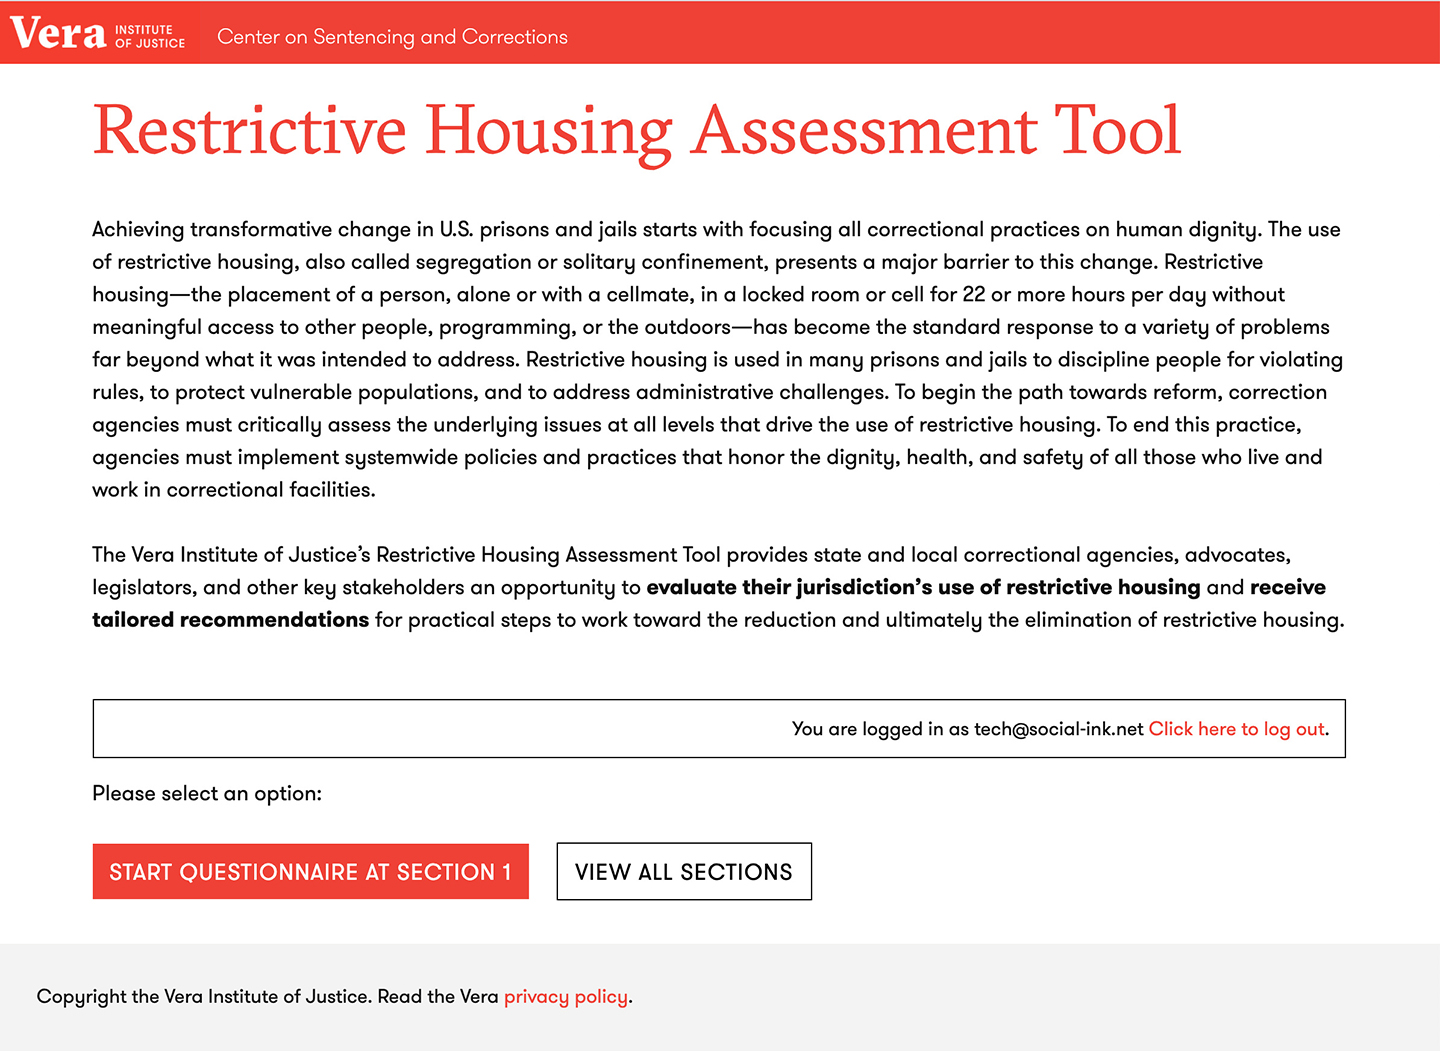 Restrictive Housing Assessment Tool from the Vera Institute of Justice: Restrictive Housing Assessment Tool - Home